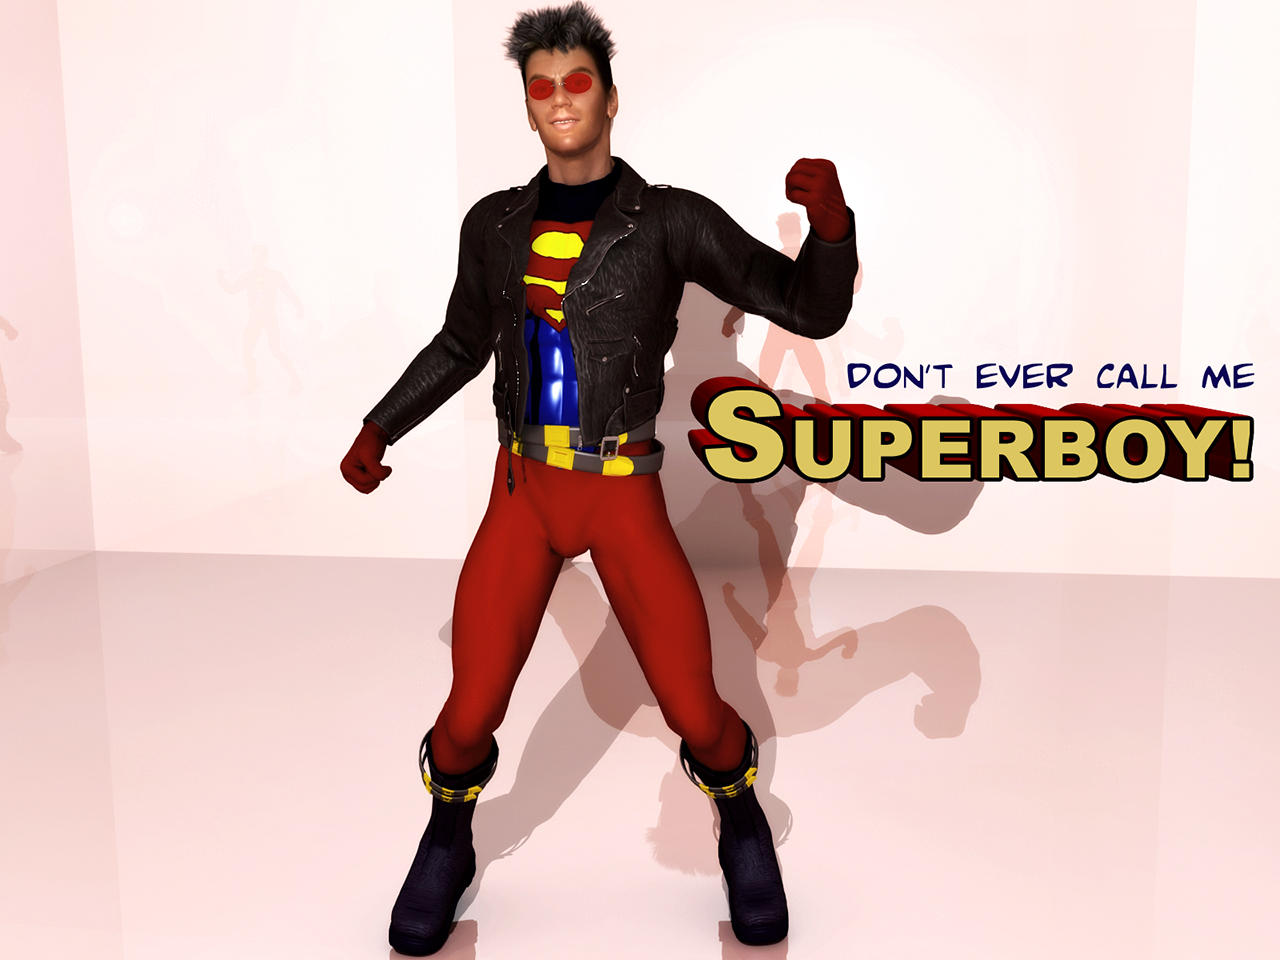 Superboy - The Early Years - Part 1